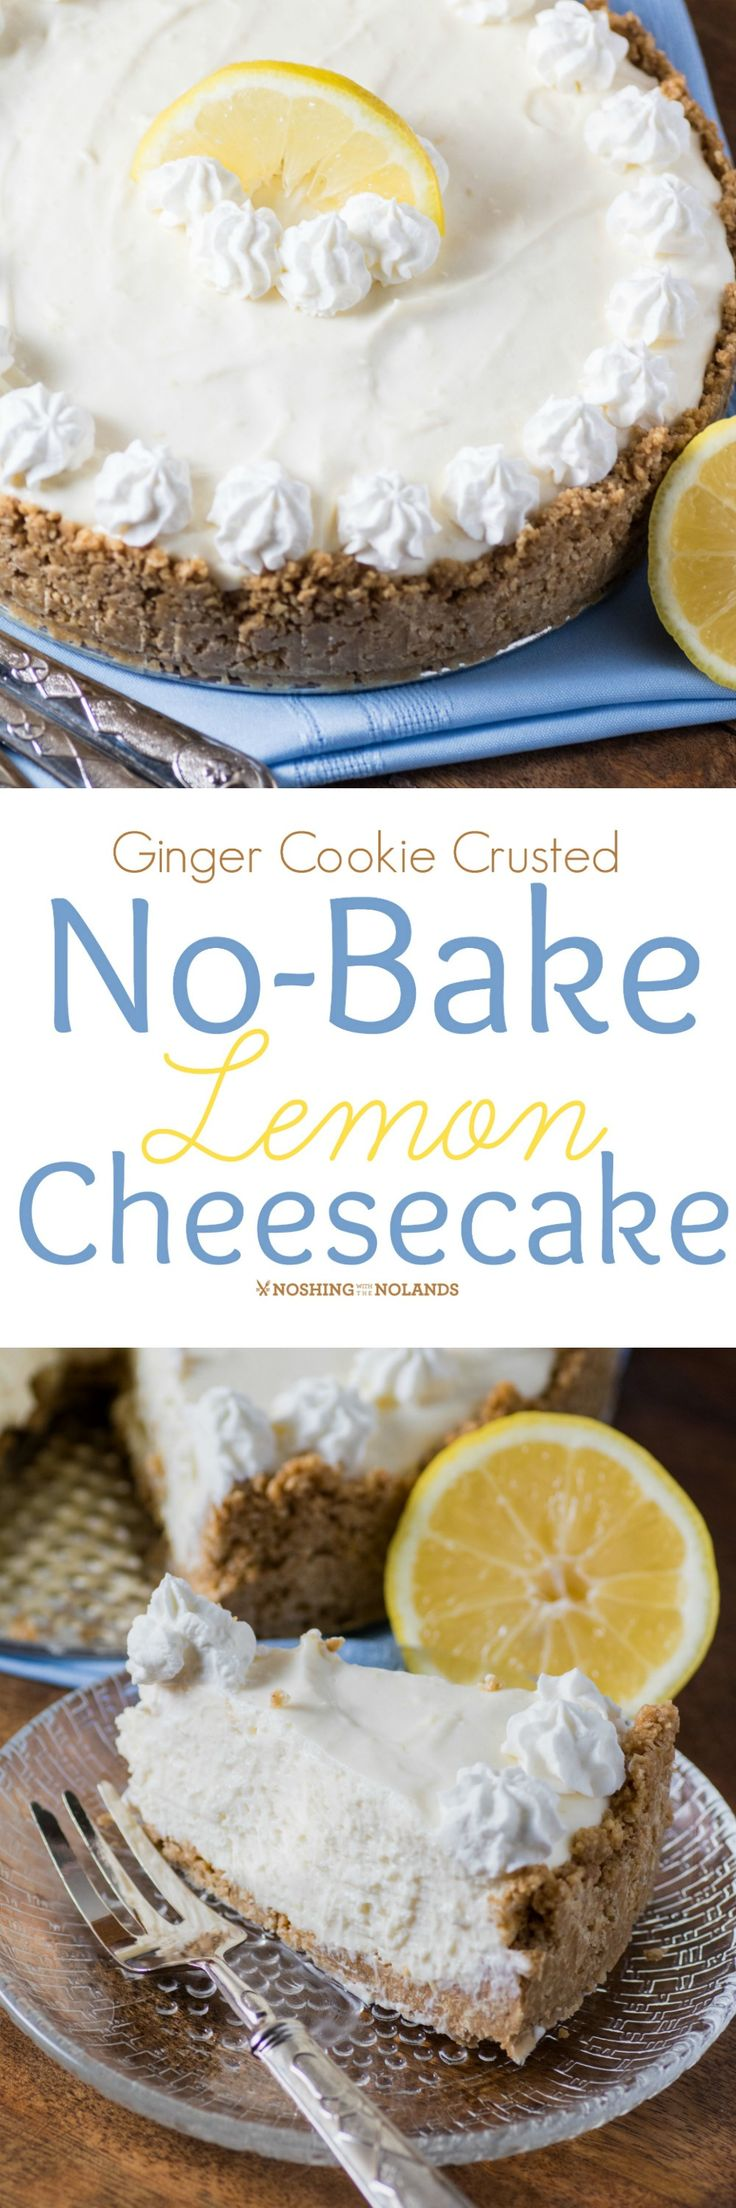 Ginger Cookie Crusted No-Bake Lemon Cheesecake by Noshing With The Nolands is such an easy dessert to make you won't want to bake a cheesecake again!